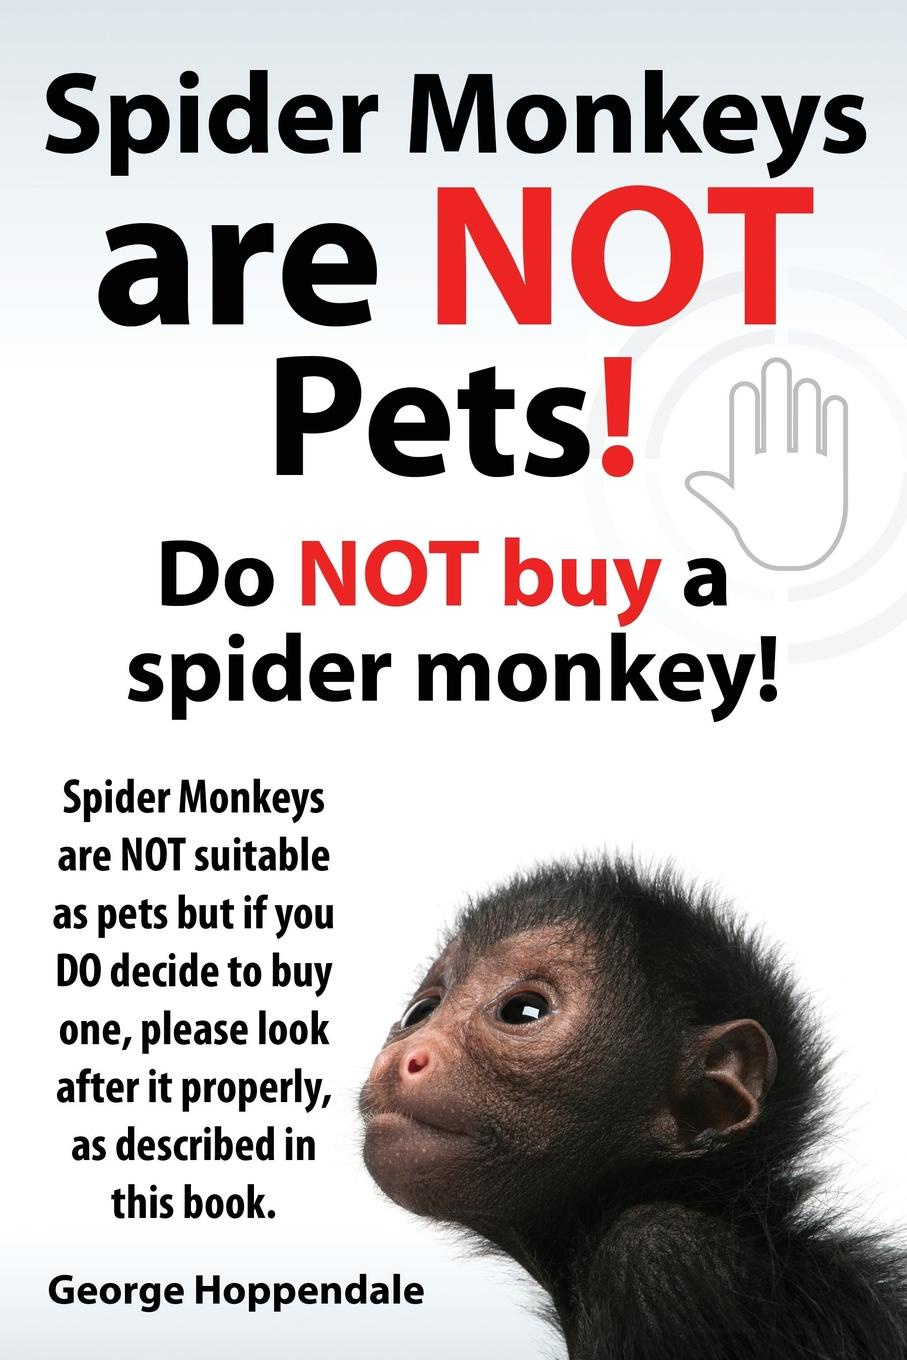 George Hoppendale Spider Monkeys Are Not Pets. Do Not Buy a Spider Monkey. Spider Monkeys Are Not Suitable as Pets But If You Do Decide to Buy One, Please Look After It